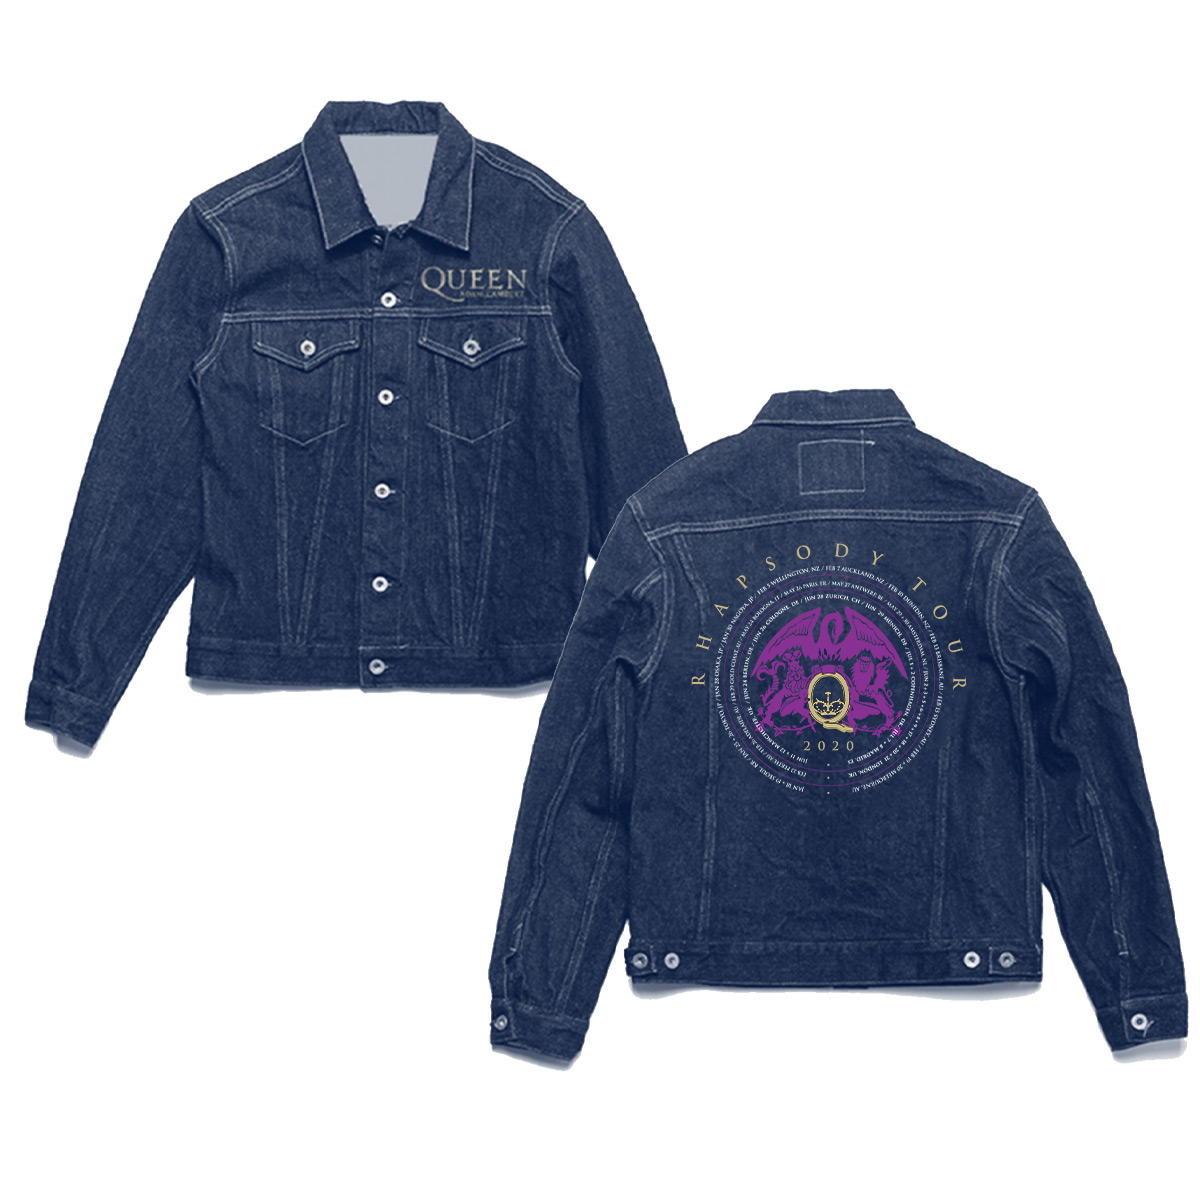 2020 Dateback Denim Jacket